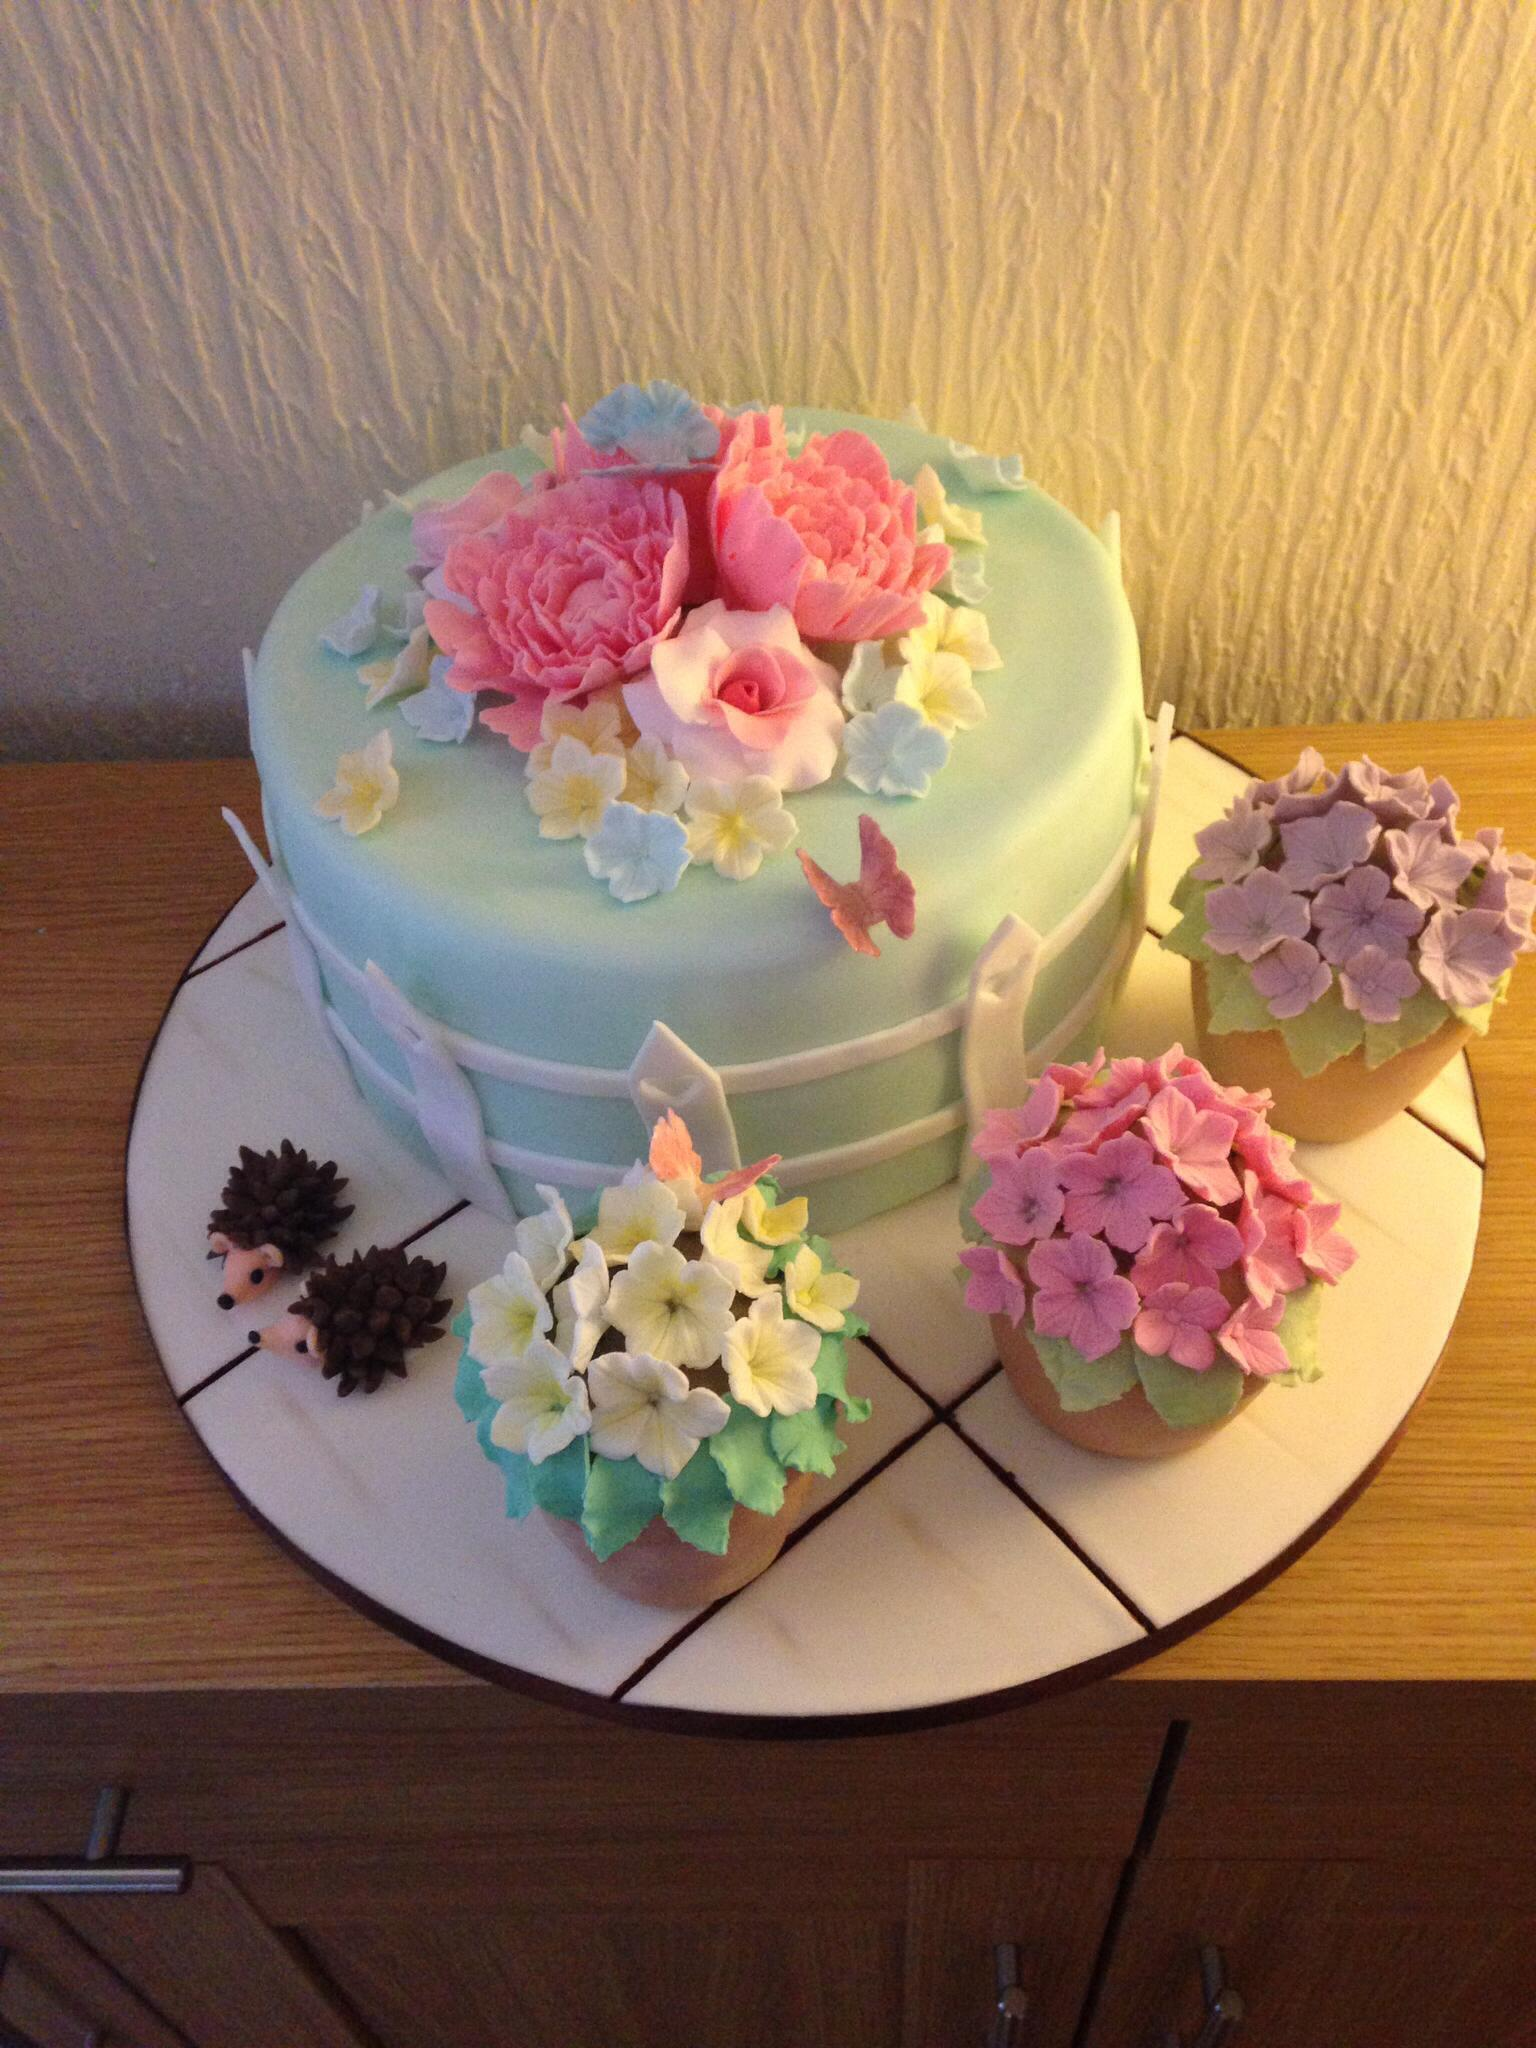 We love this flower pot cake with from issue 18 & our special flowers issue, made by Rachael Lovell. http://t.co/TwfoqVDX1J